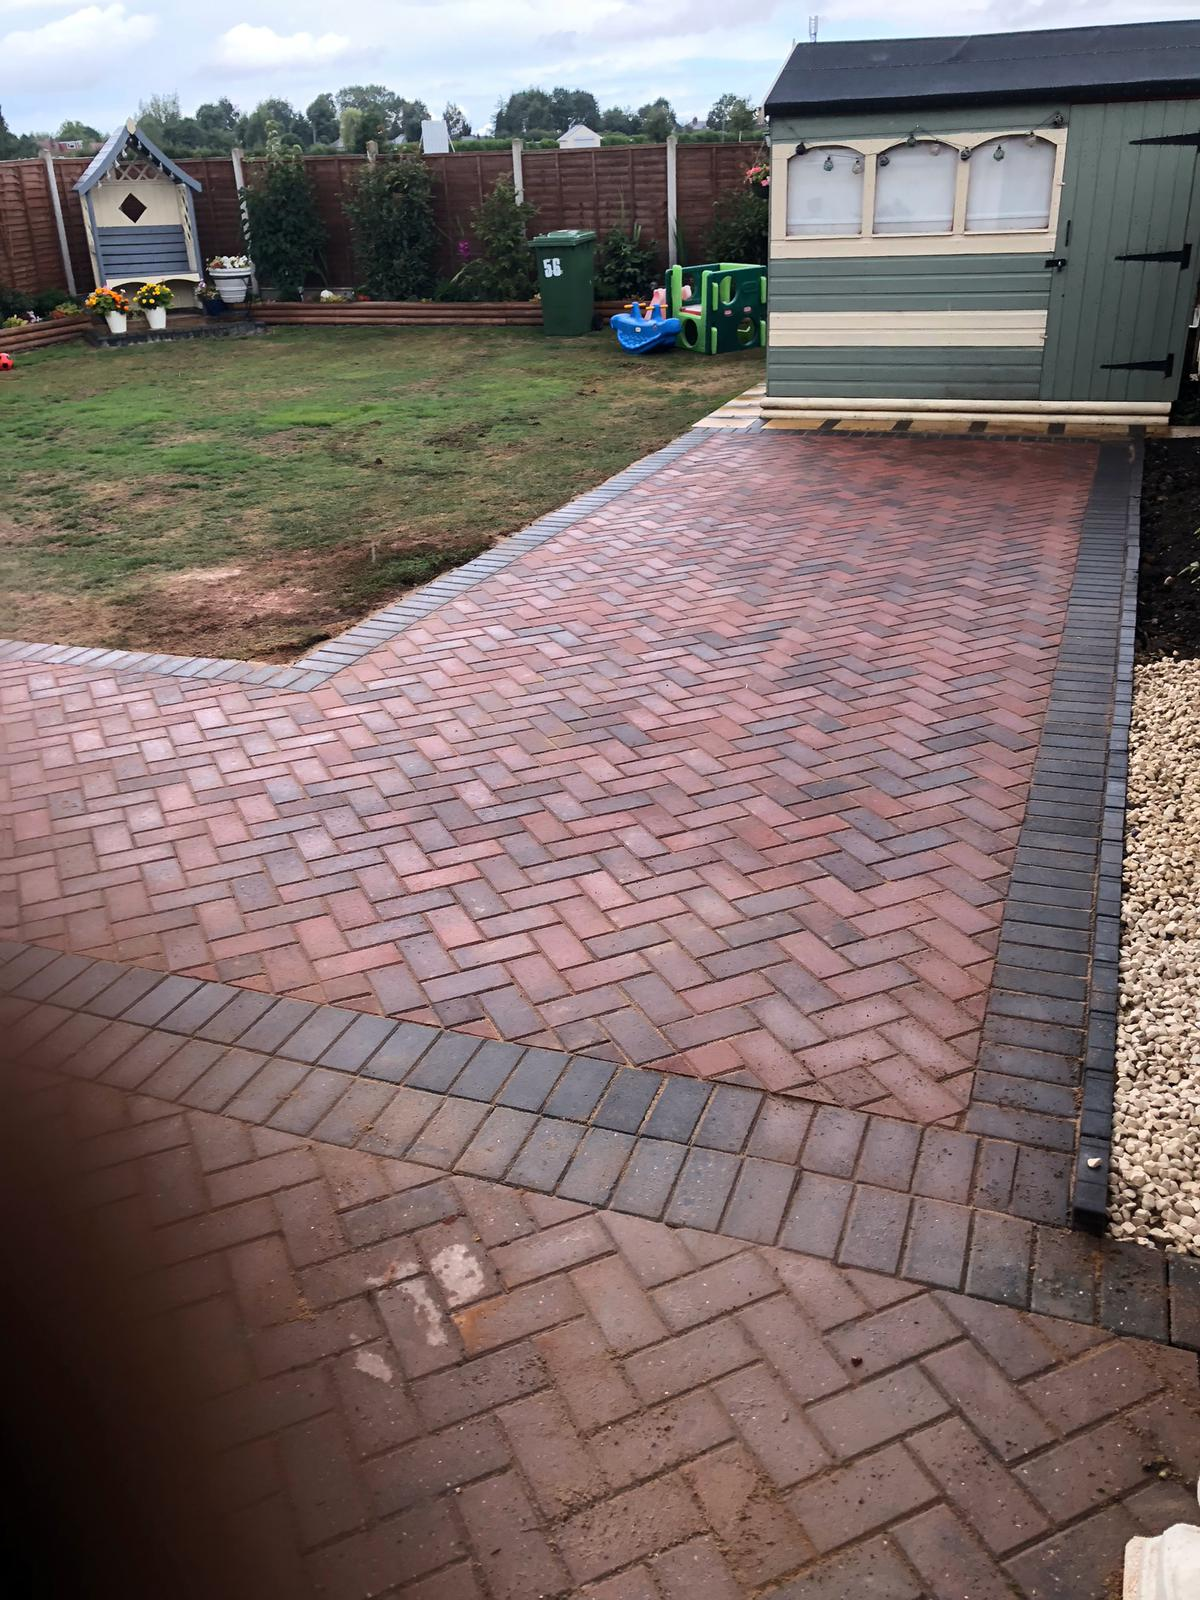 Block paved pathway in back garden using red and black bricks